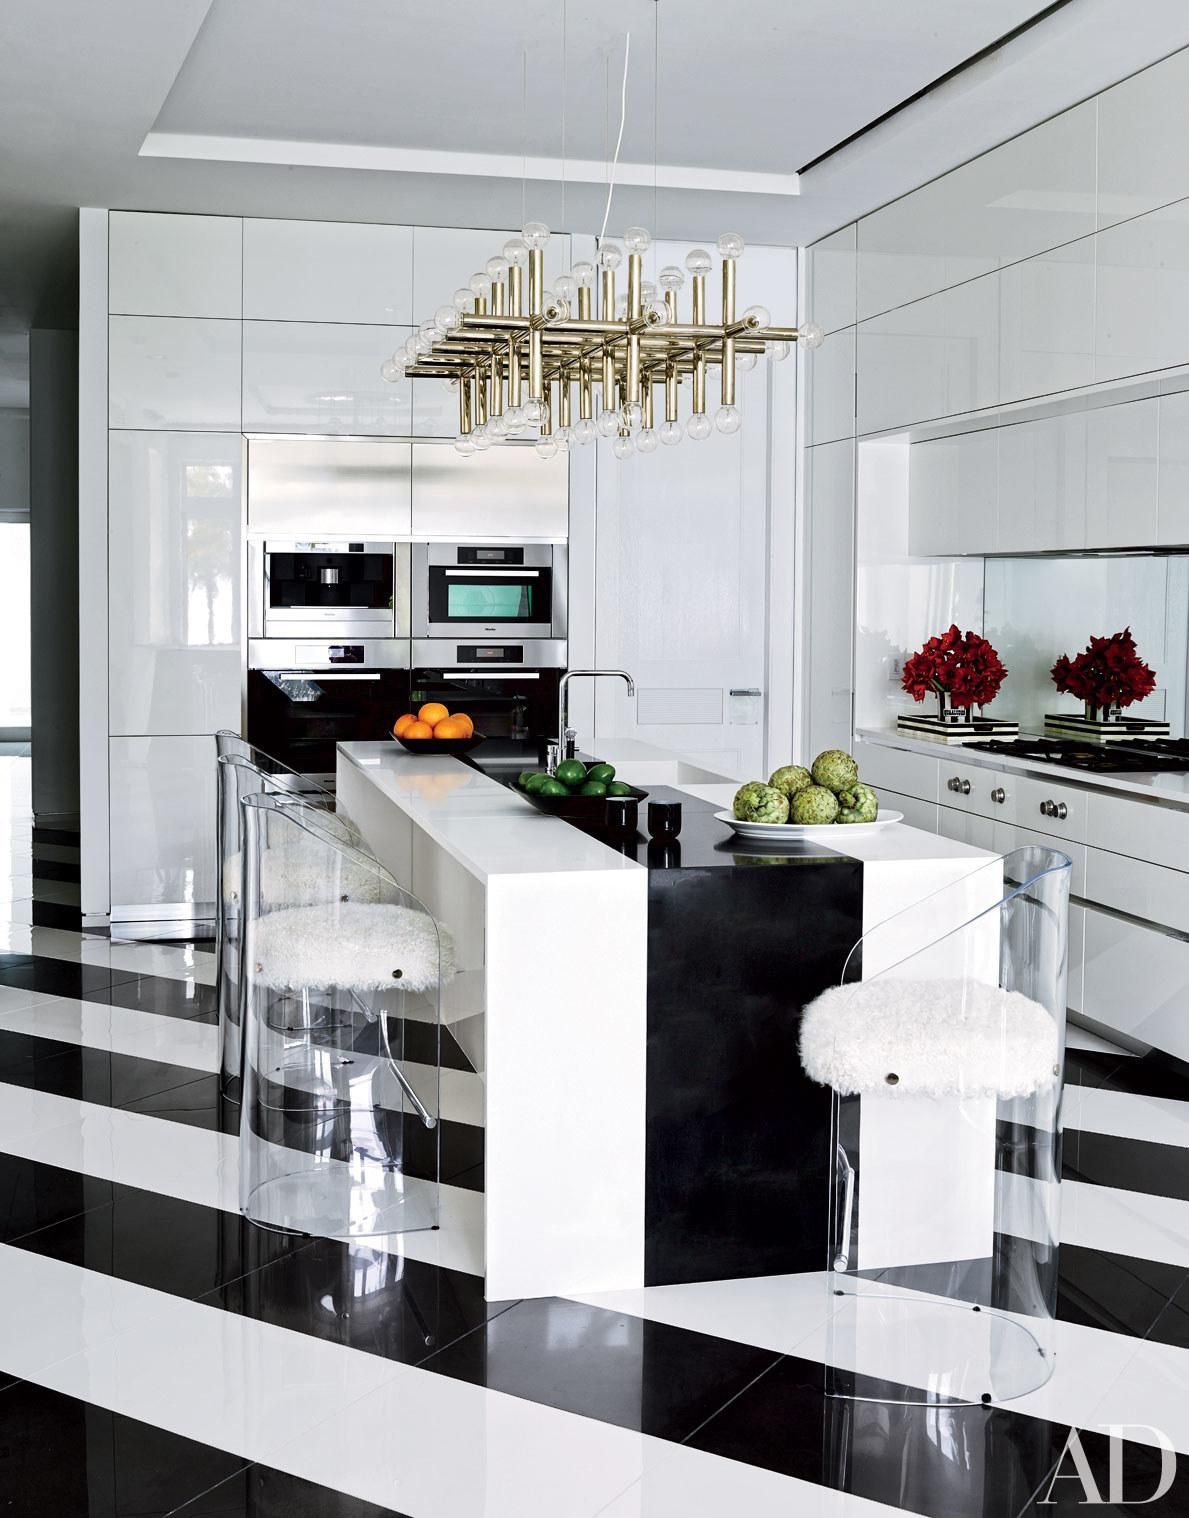 At Dee and Tommy Hilfiger's Miami-area estate, decorated with the help of Martyn Lawrence Bullard, acrylic stools, cushioned in Mongolian lamb's wool, gather around the kitchen's Caesarstone island. Read on to see more incredibly chic celebrity kitchens.